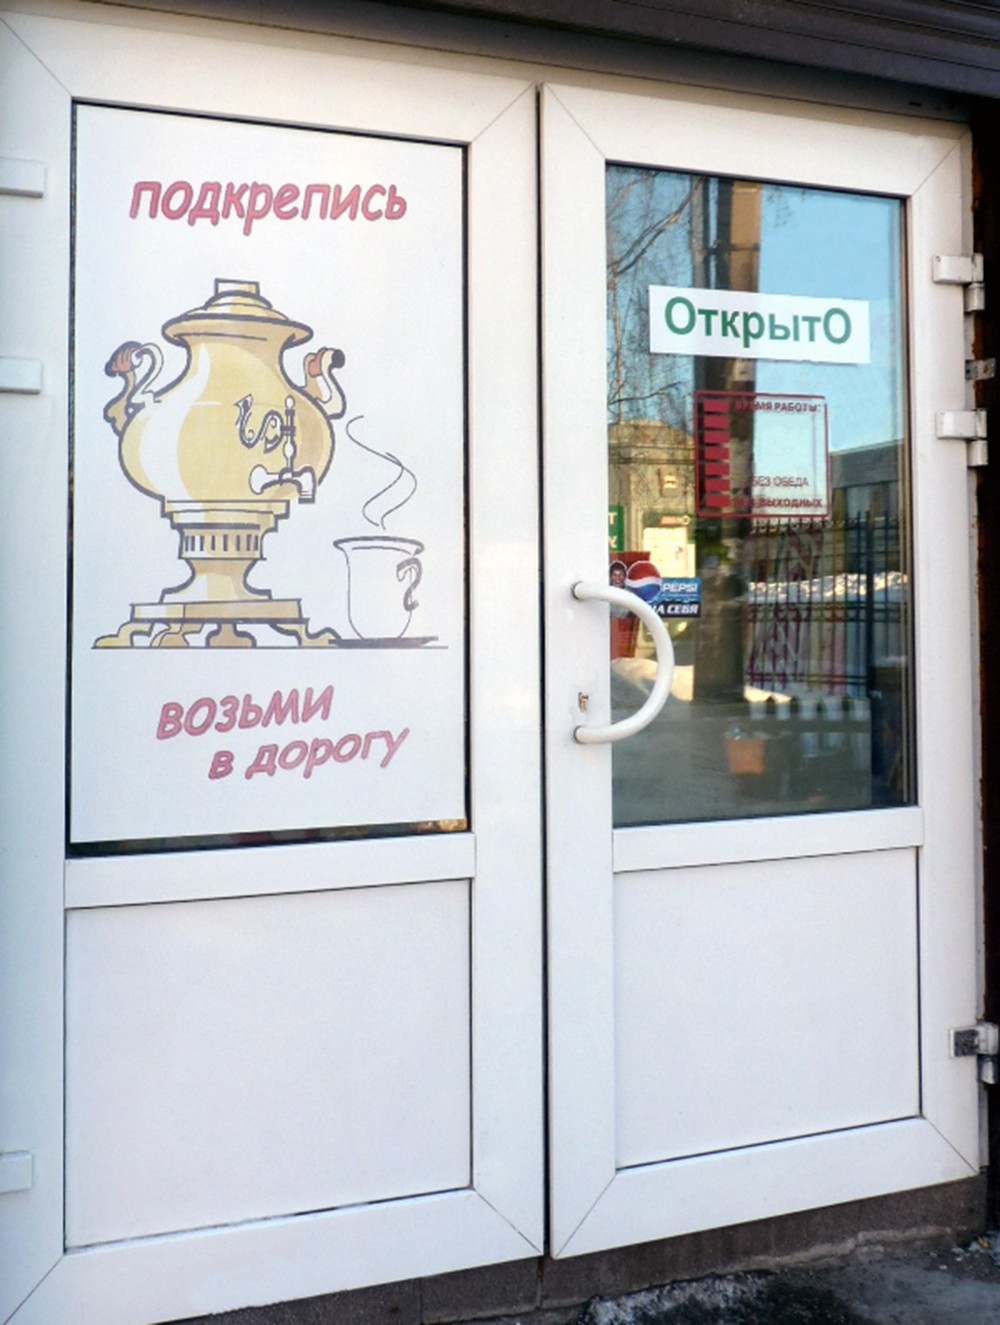 00b Russian donut shop in Murino